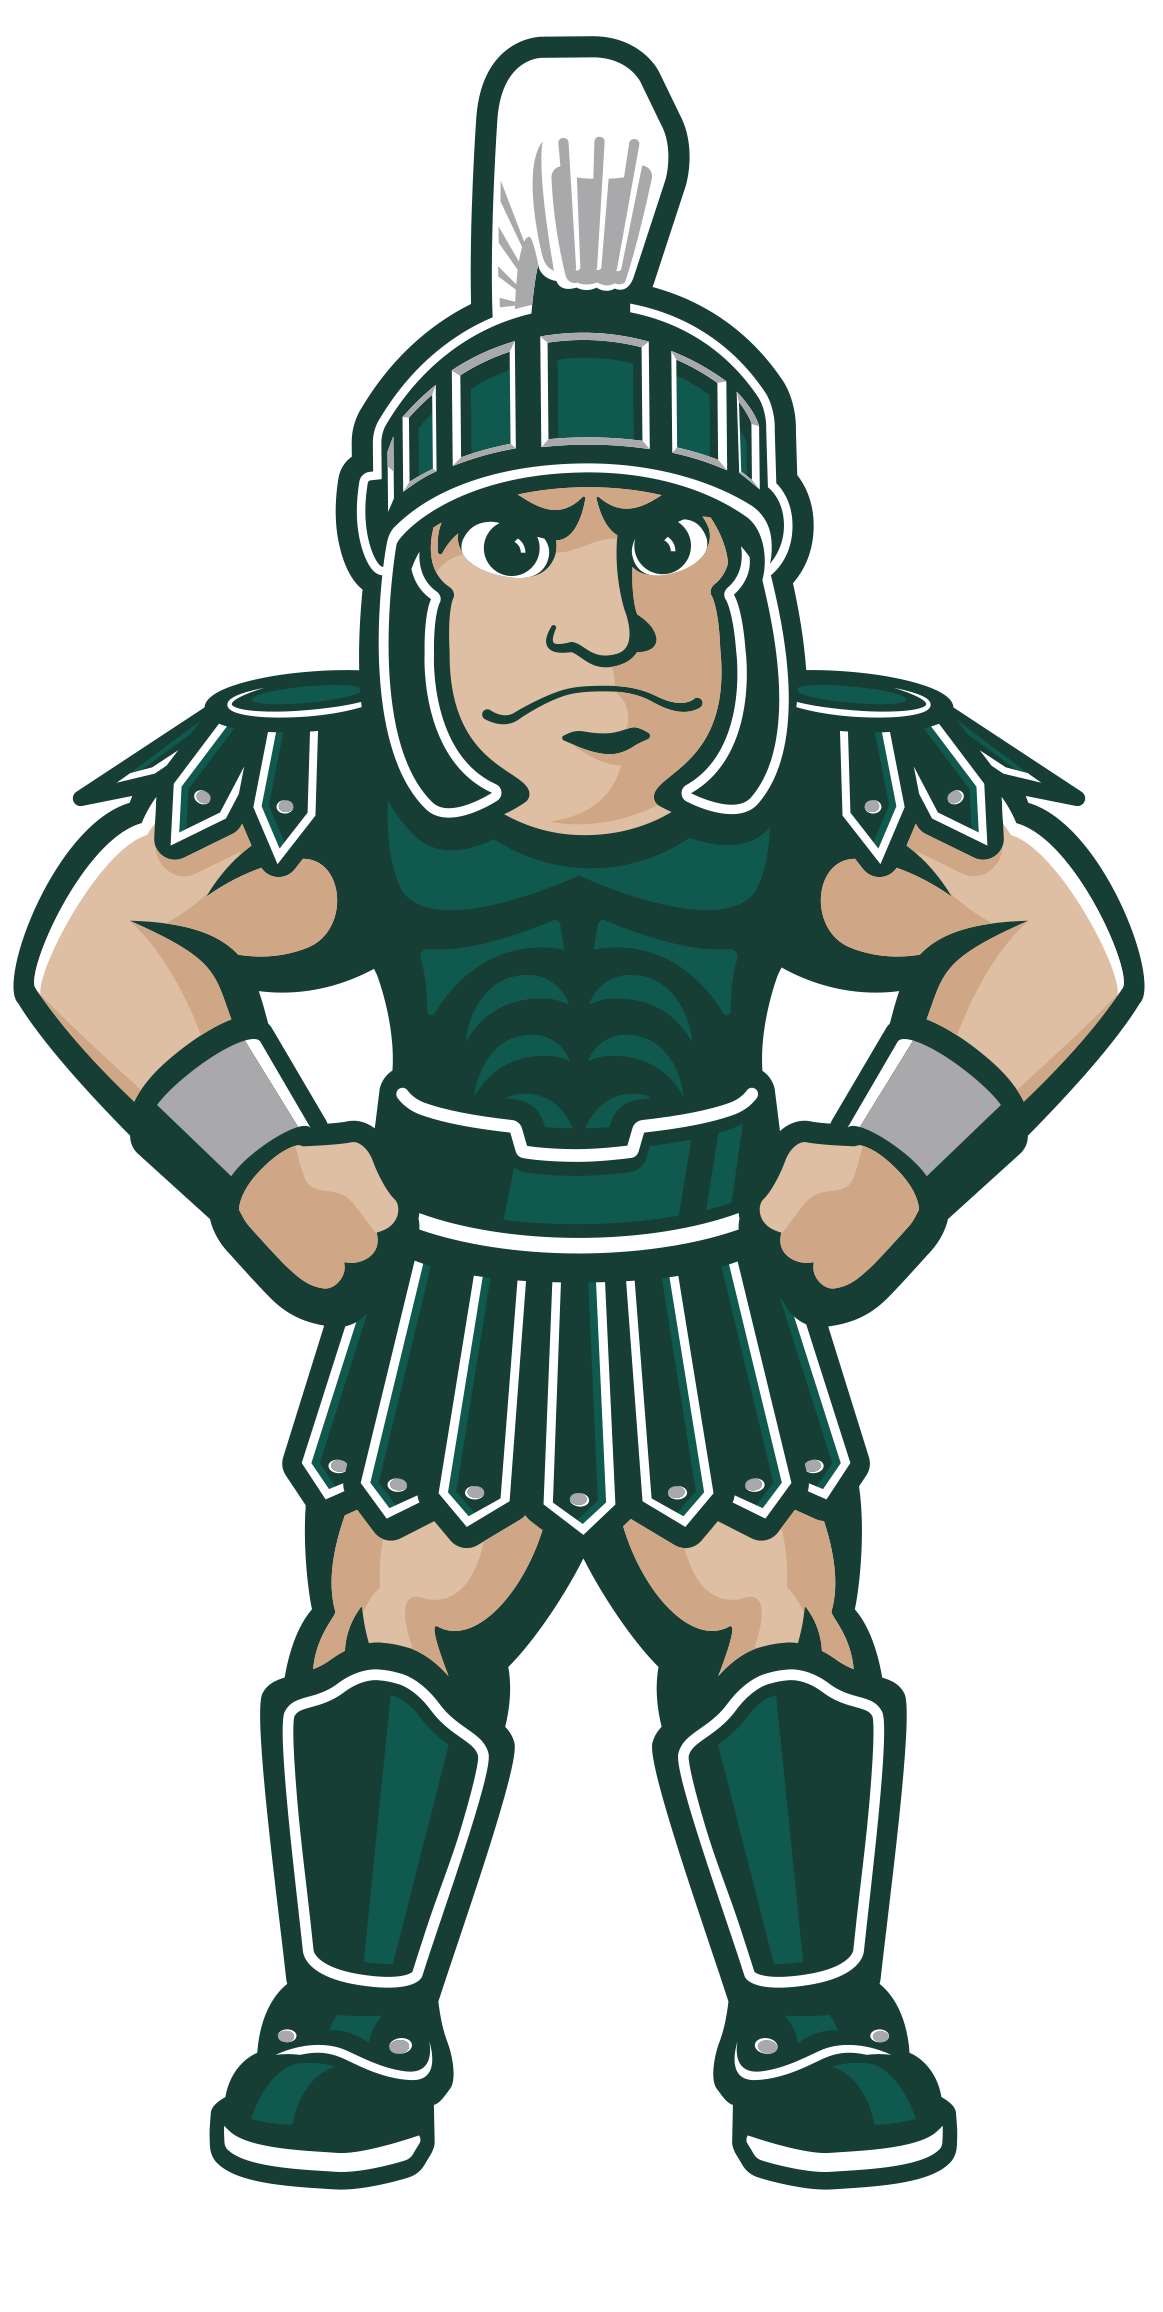 Sparty with Arms Down